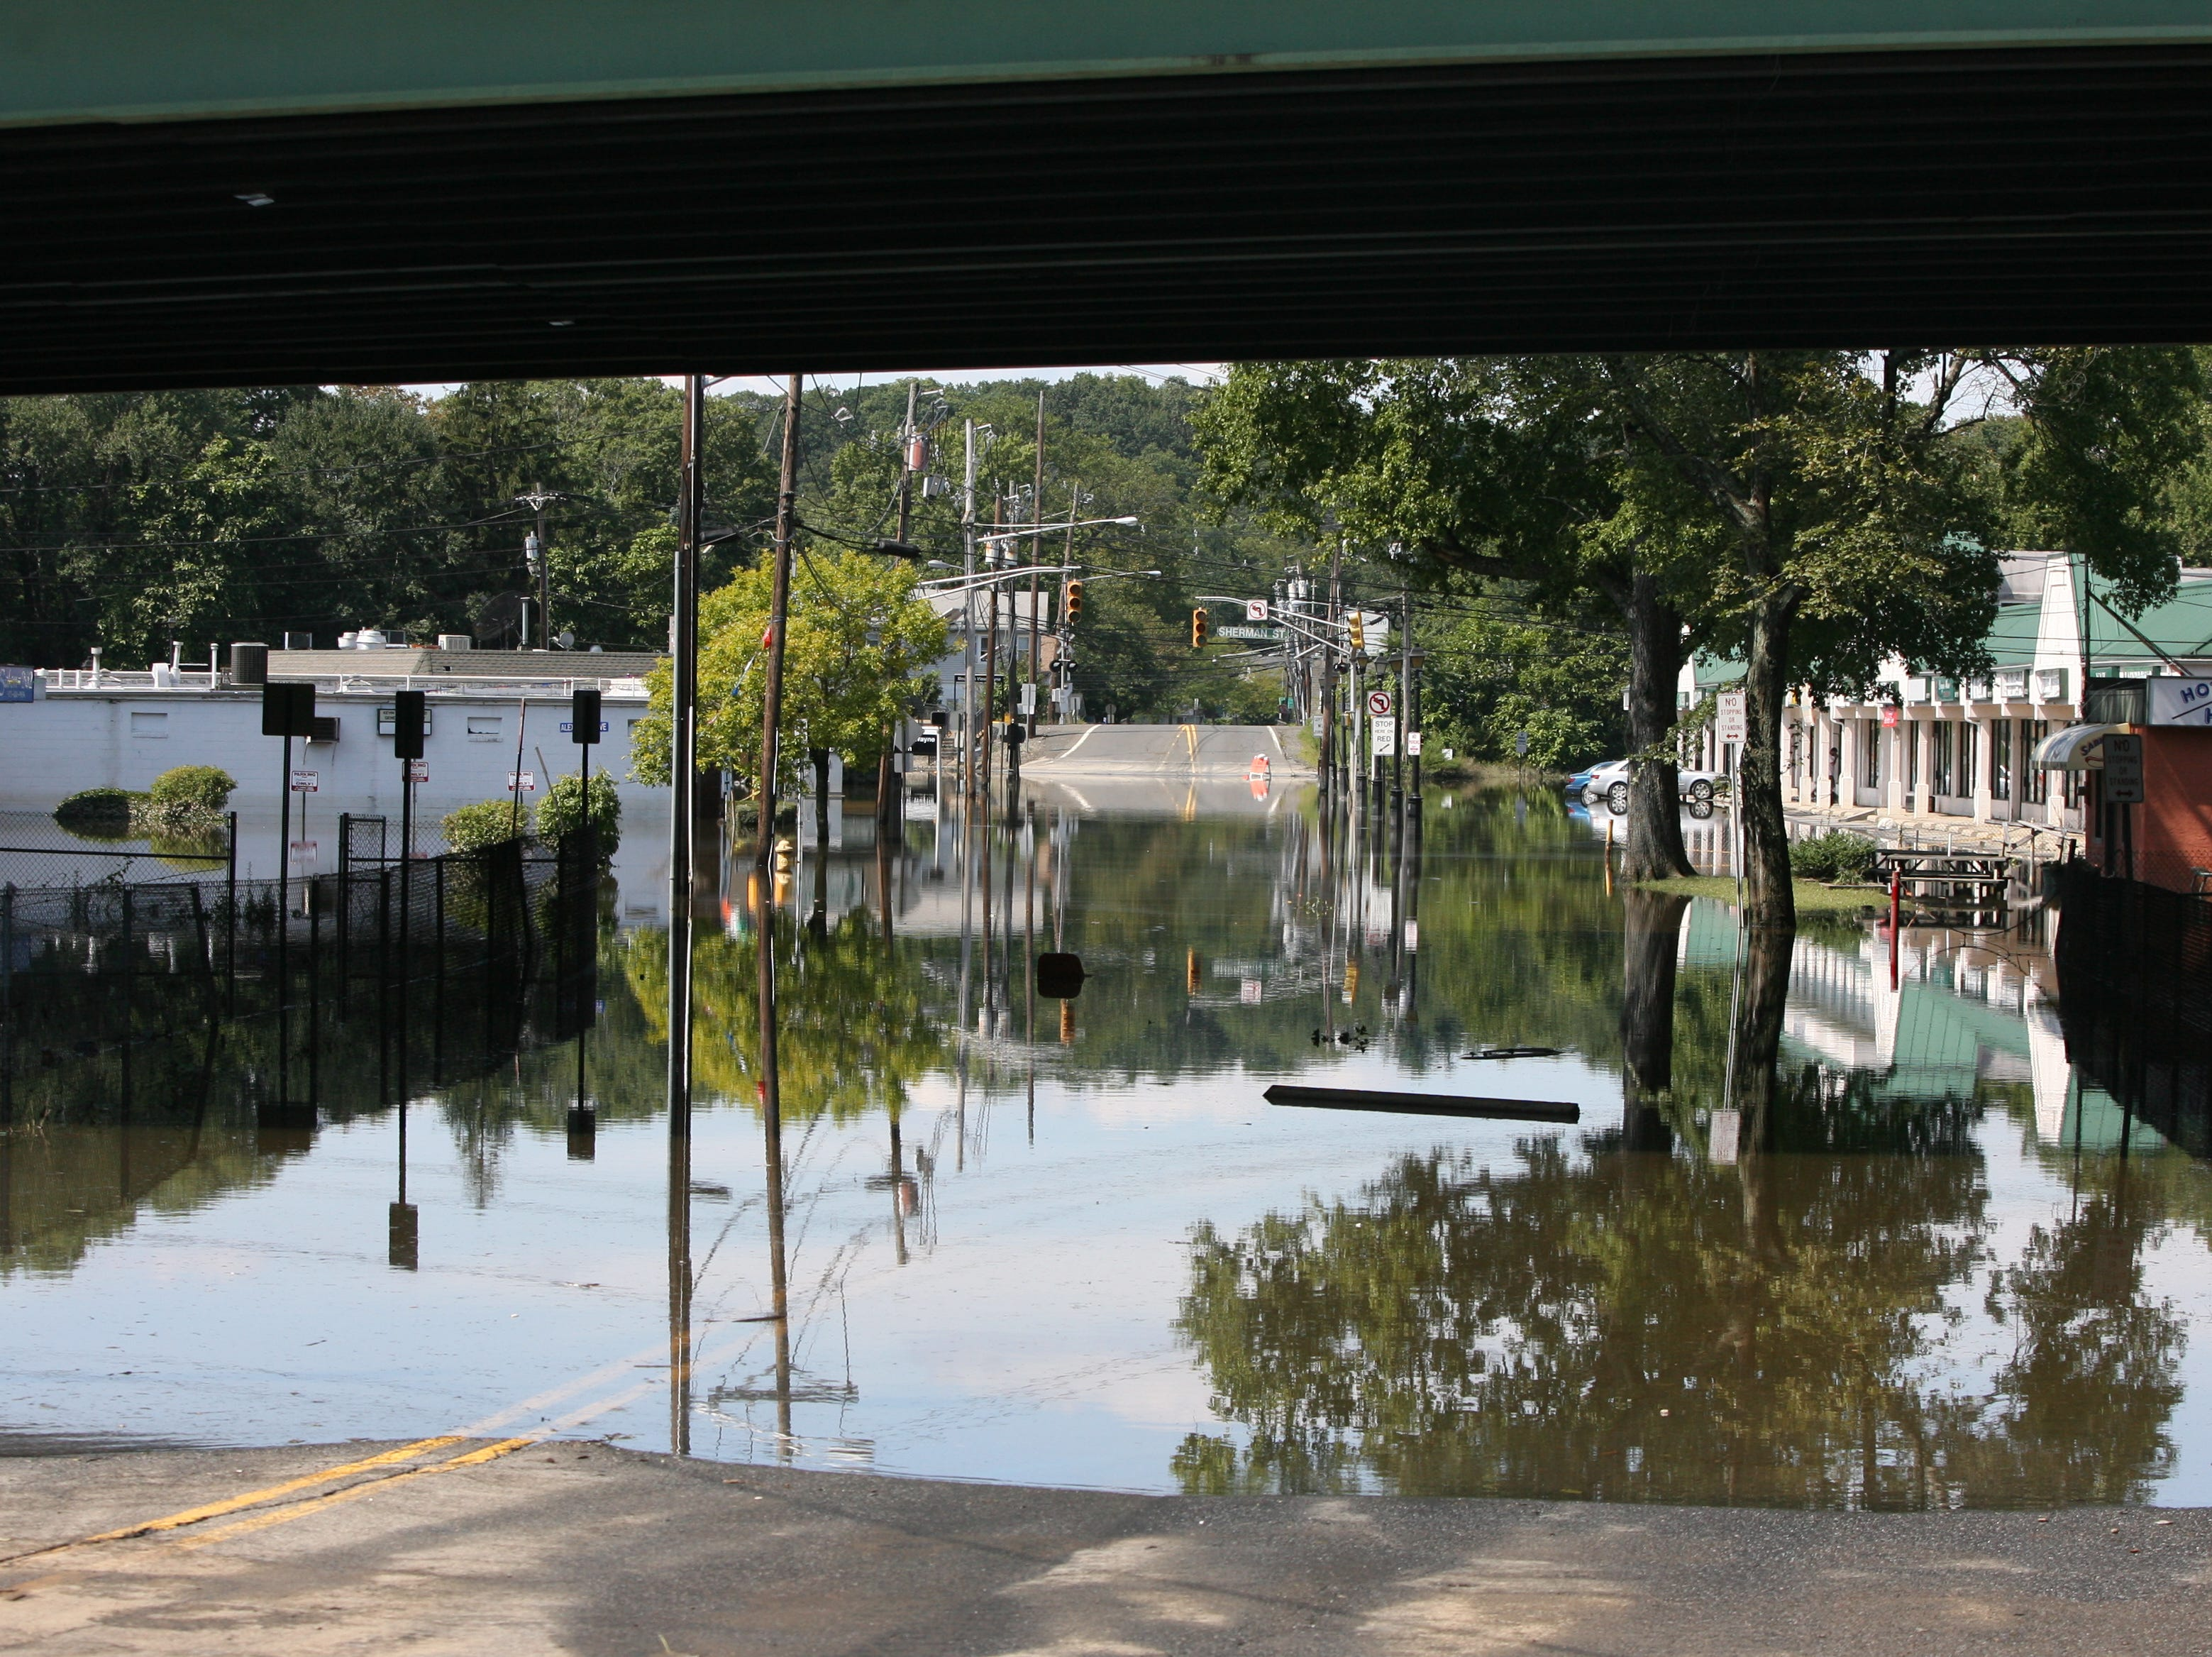 Aug. 31, 2011: The view of Lincoln Park from Wayne showing the effects of Hurricane Irene.